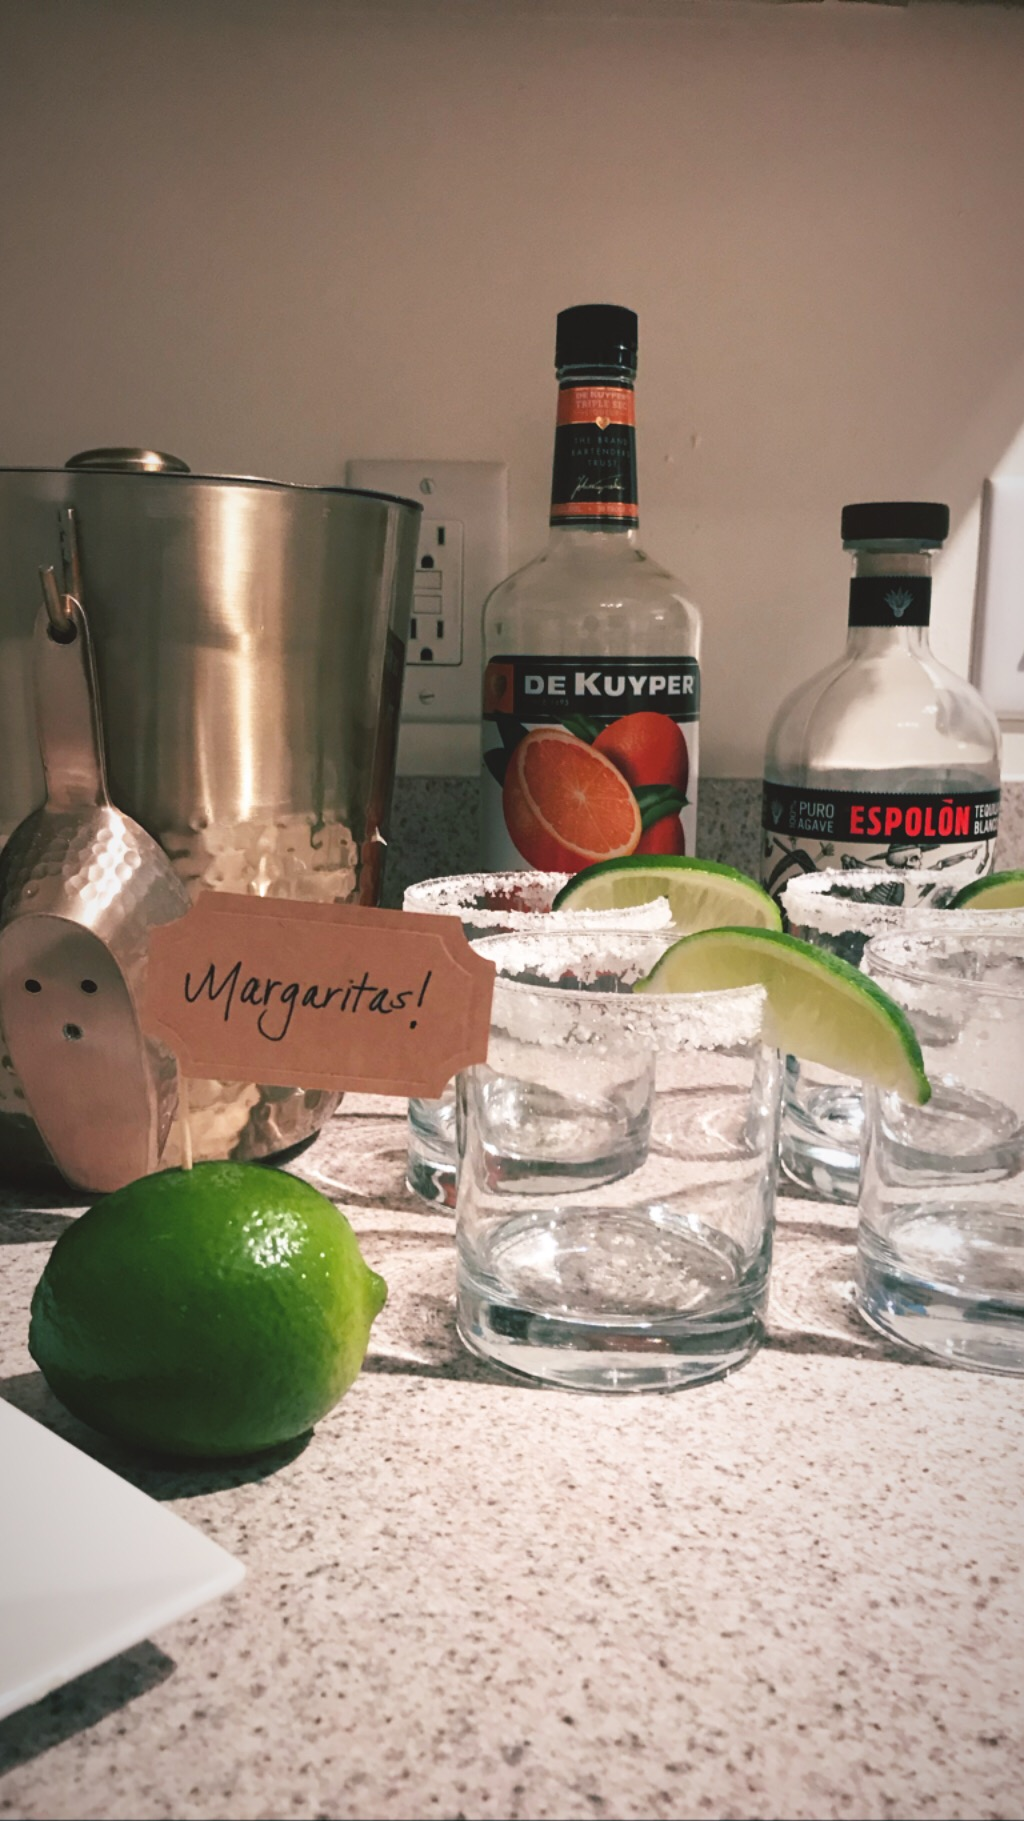 Homemade Margs. - I don't give away all my secrets, but who has time to squeeze enough fresh limes for margs? Not me. But here's the next best thing: Nellie & Joe's Key West Lime Juice.